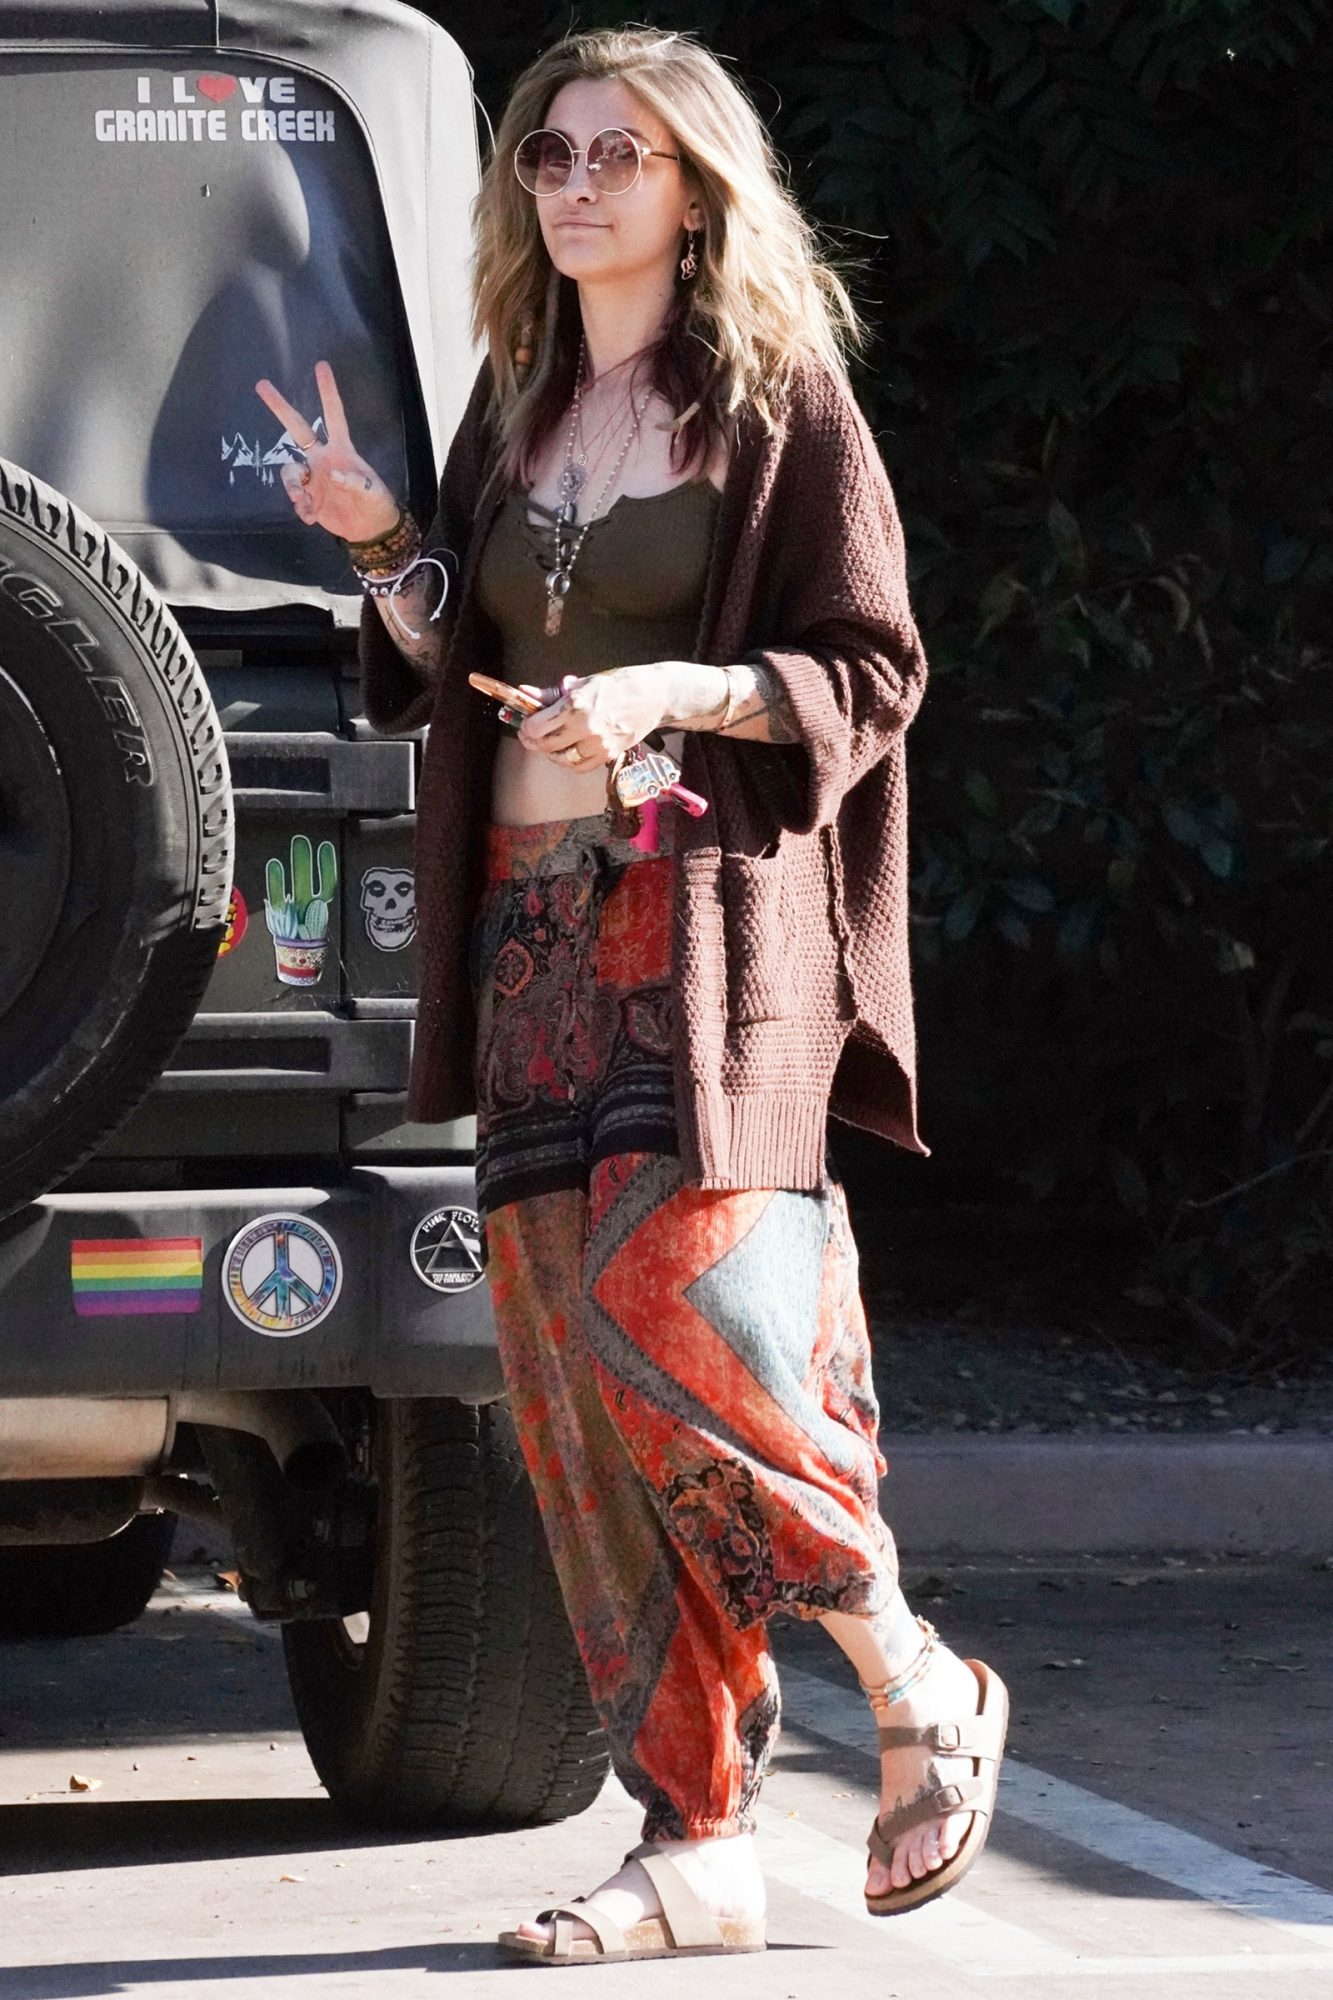 Paris Jackson spreads peace as she goes shopping at Walgreens